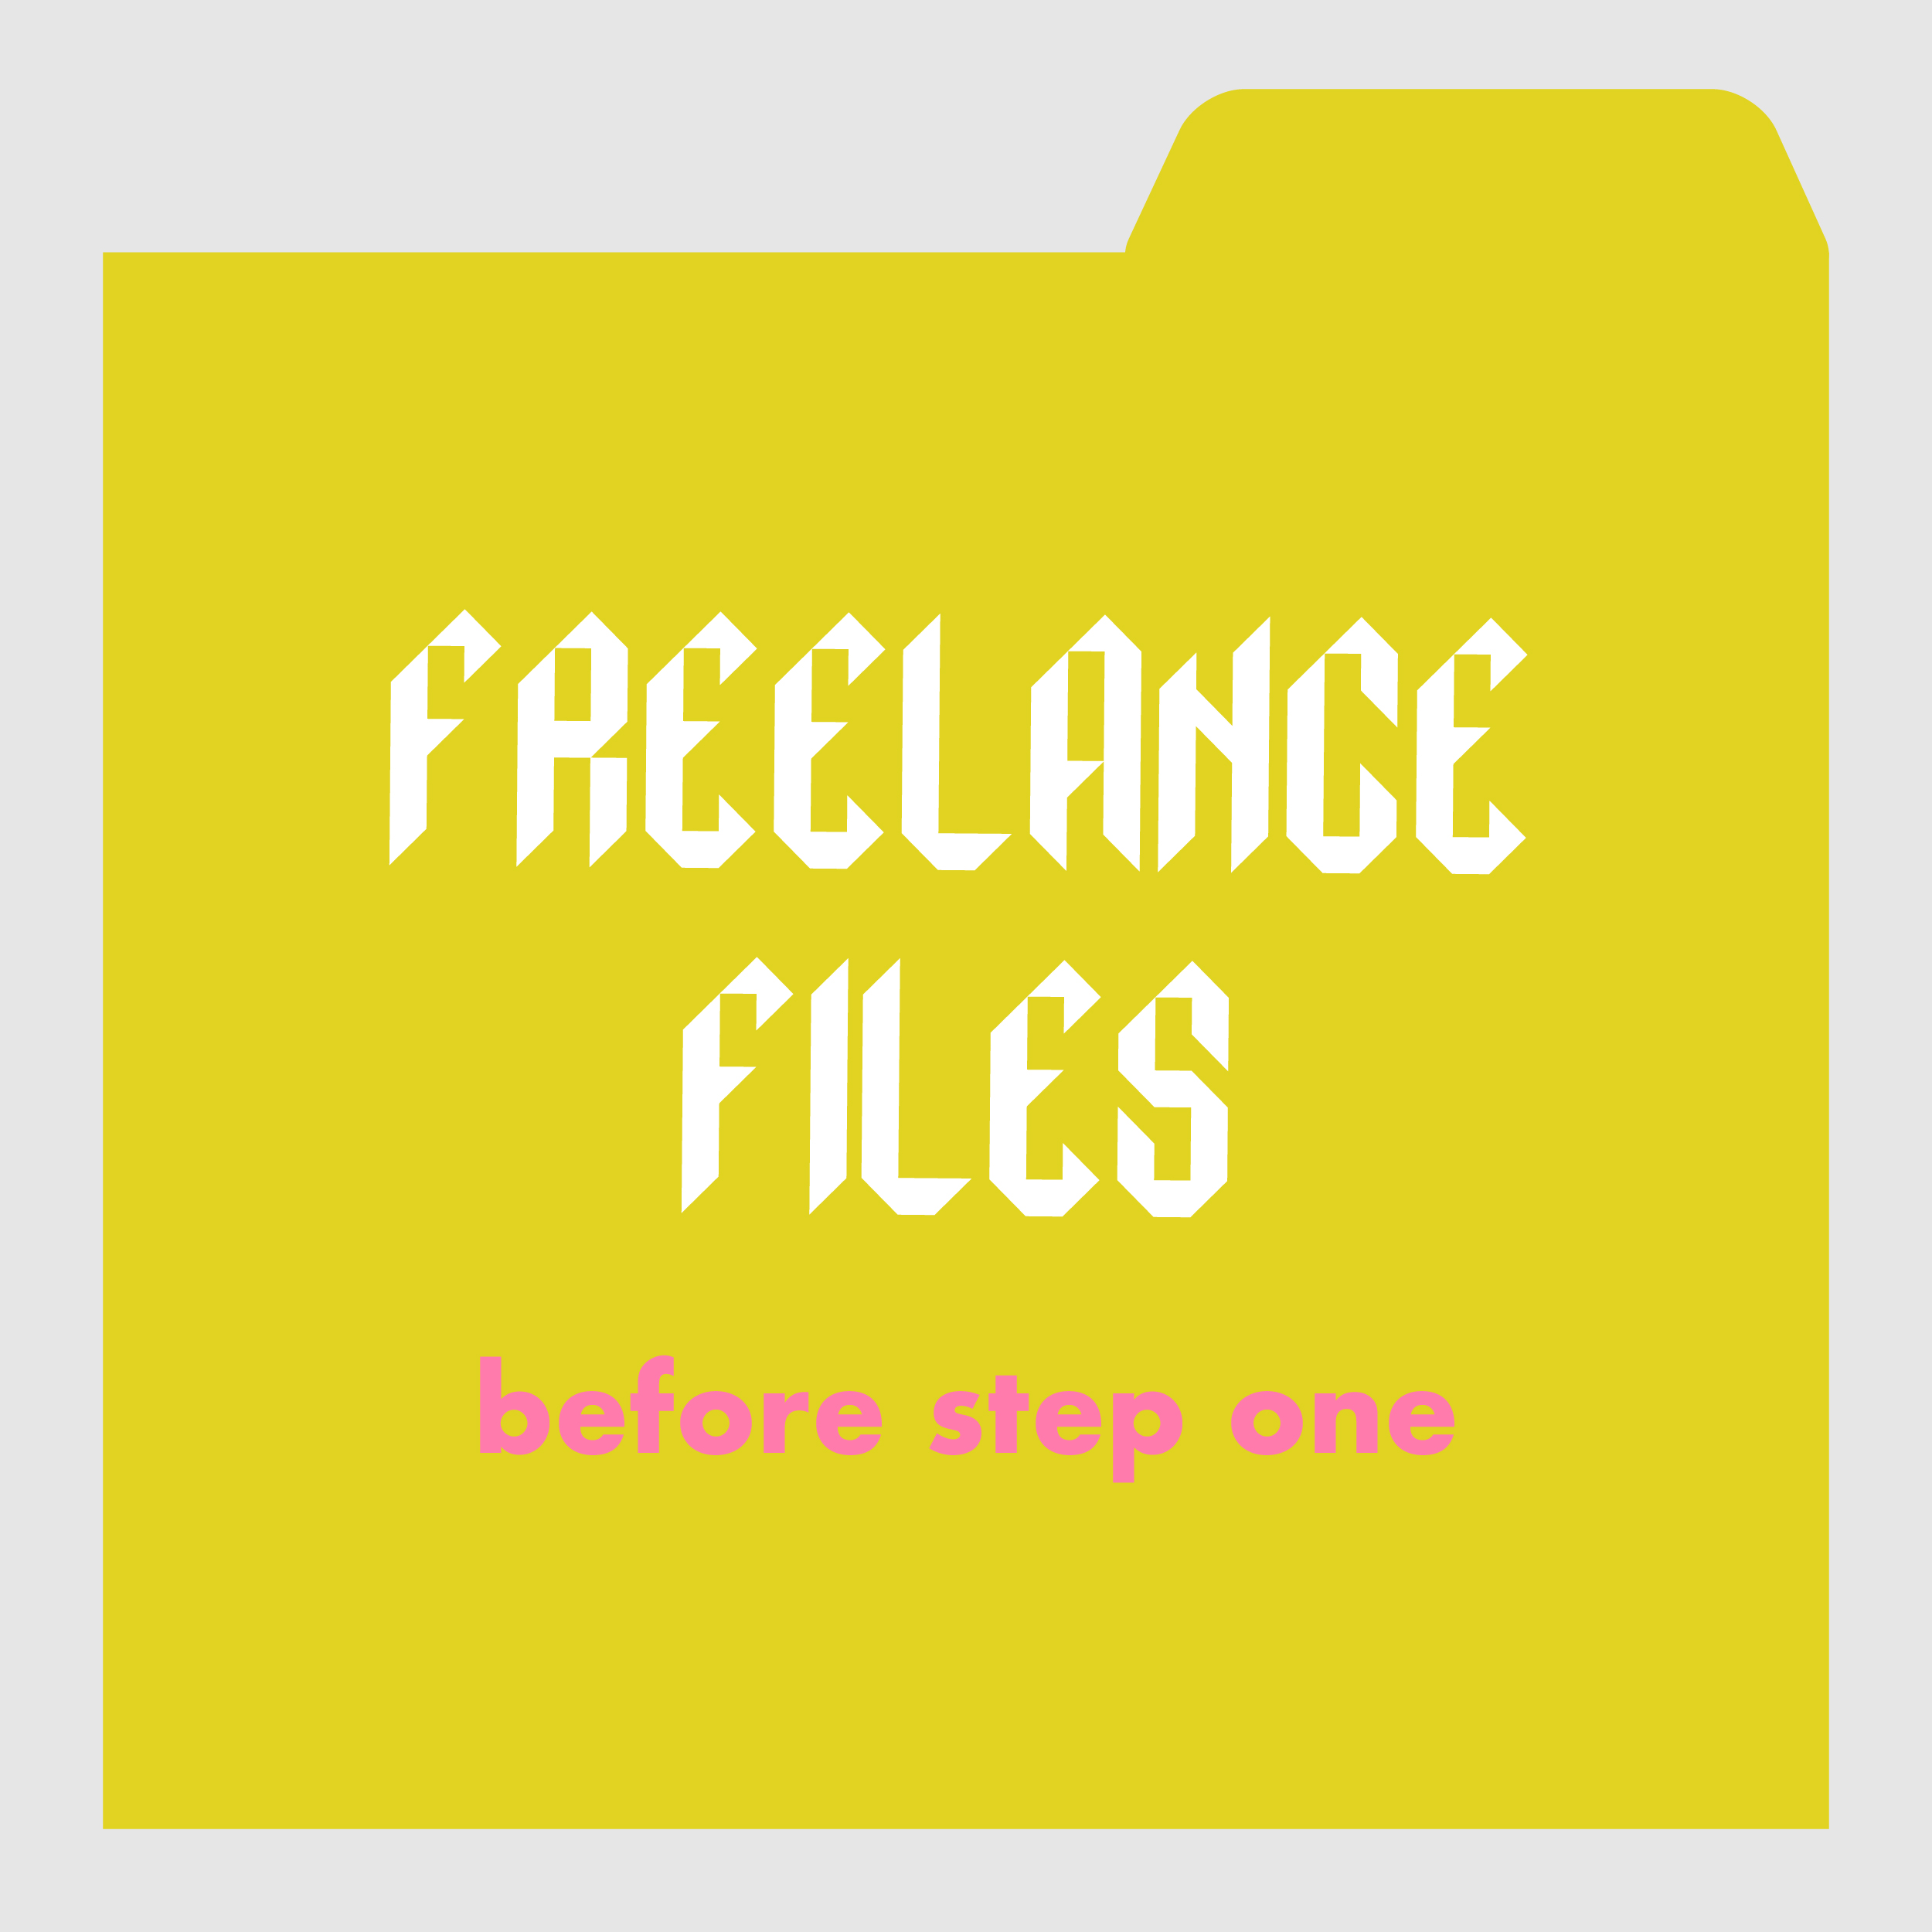 freelance files_before step one